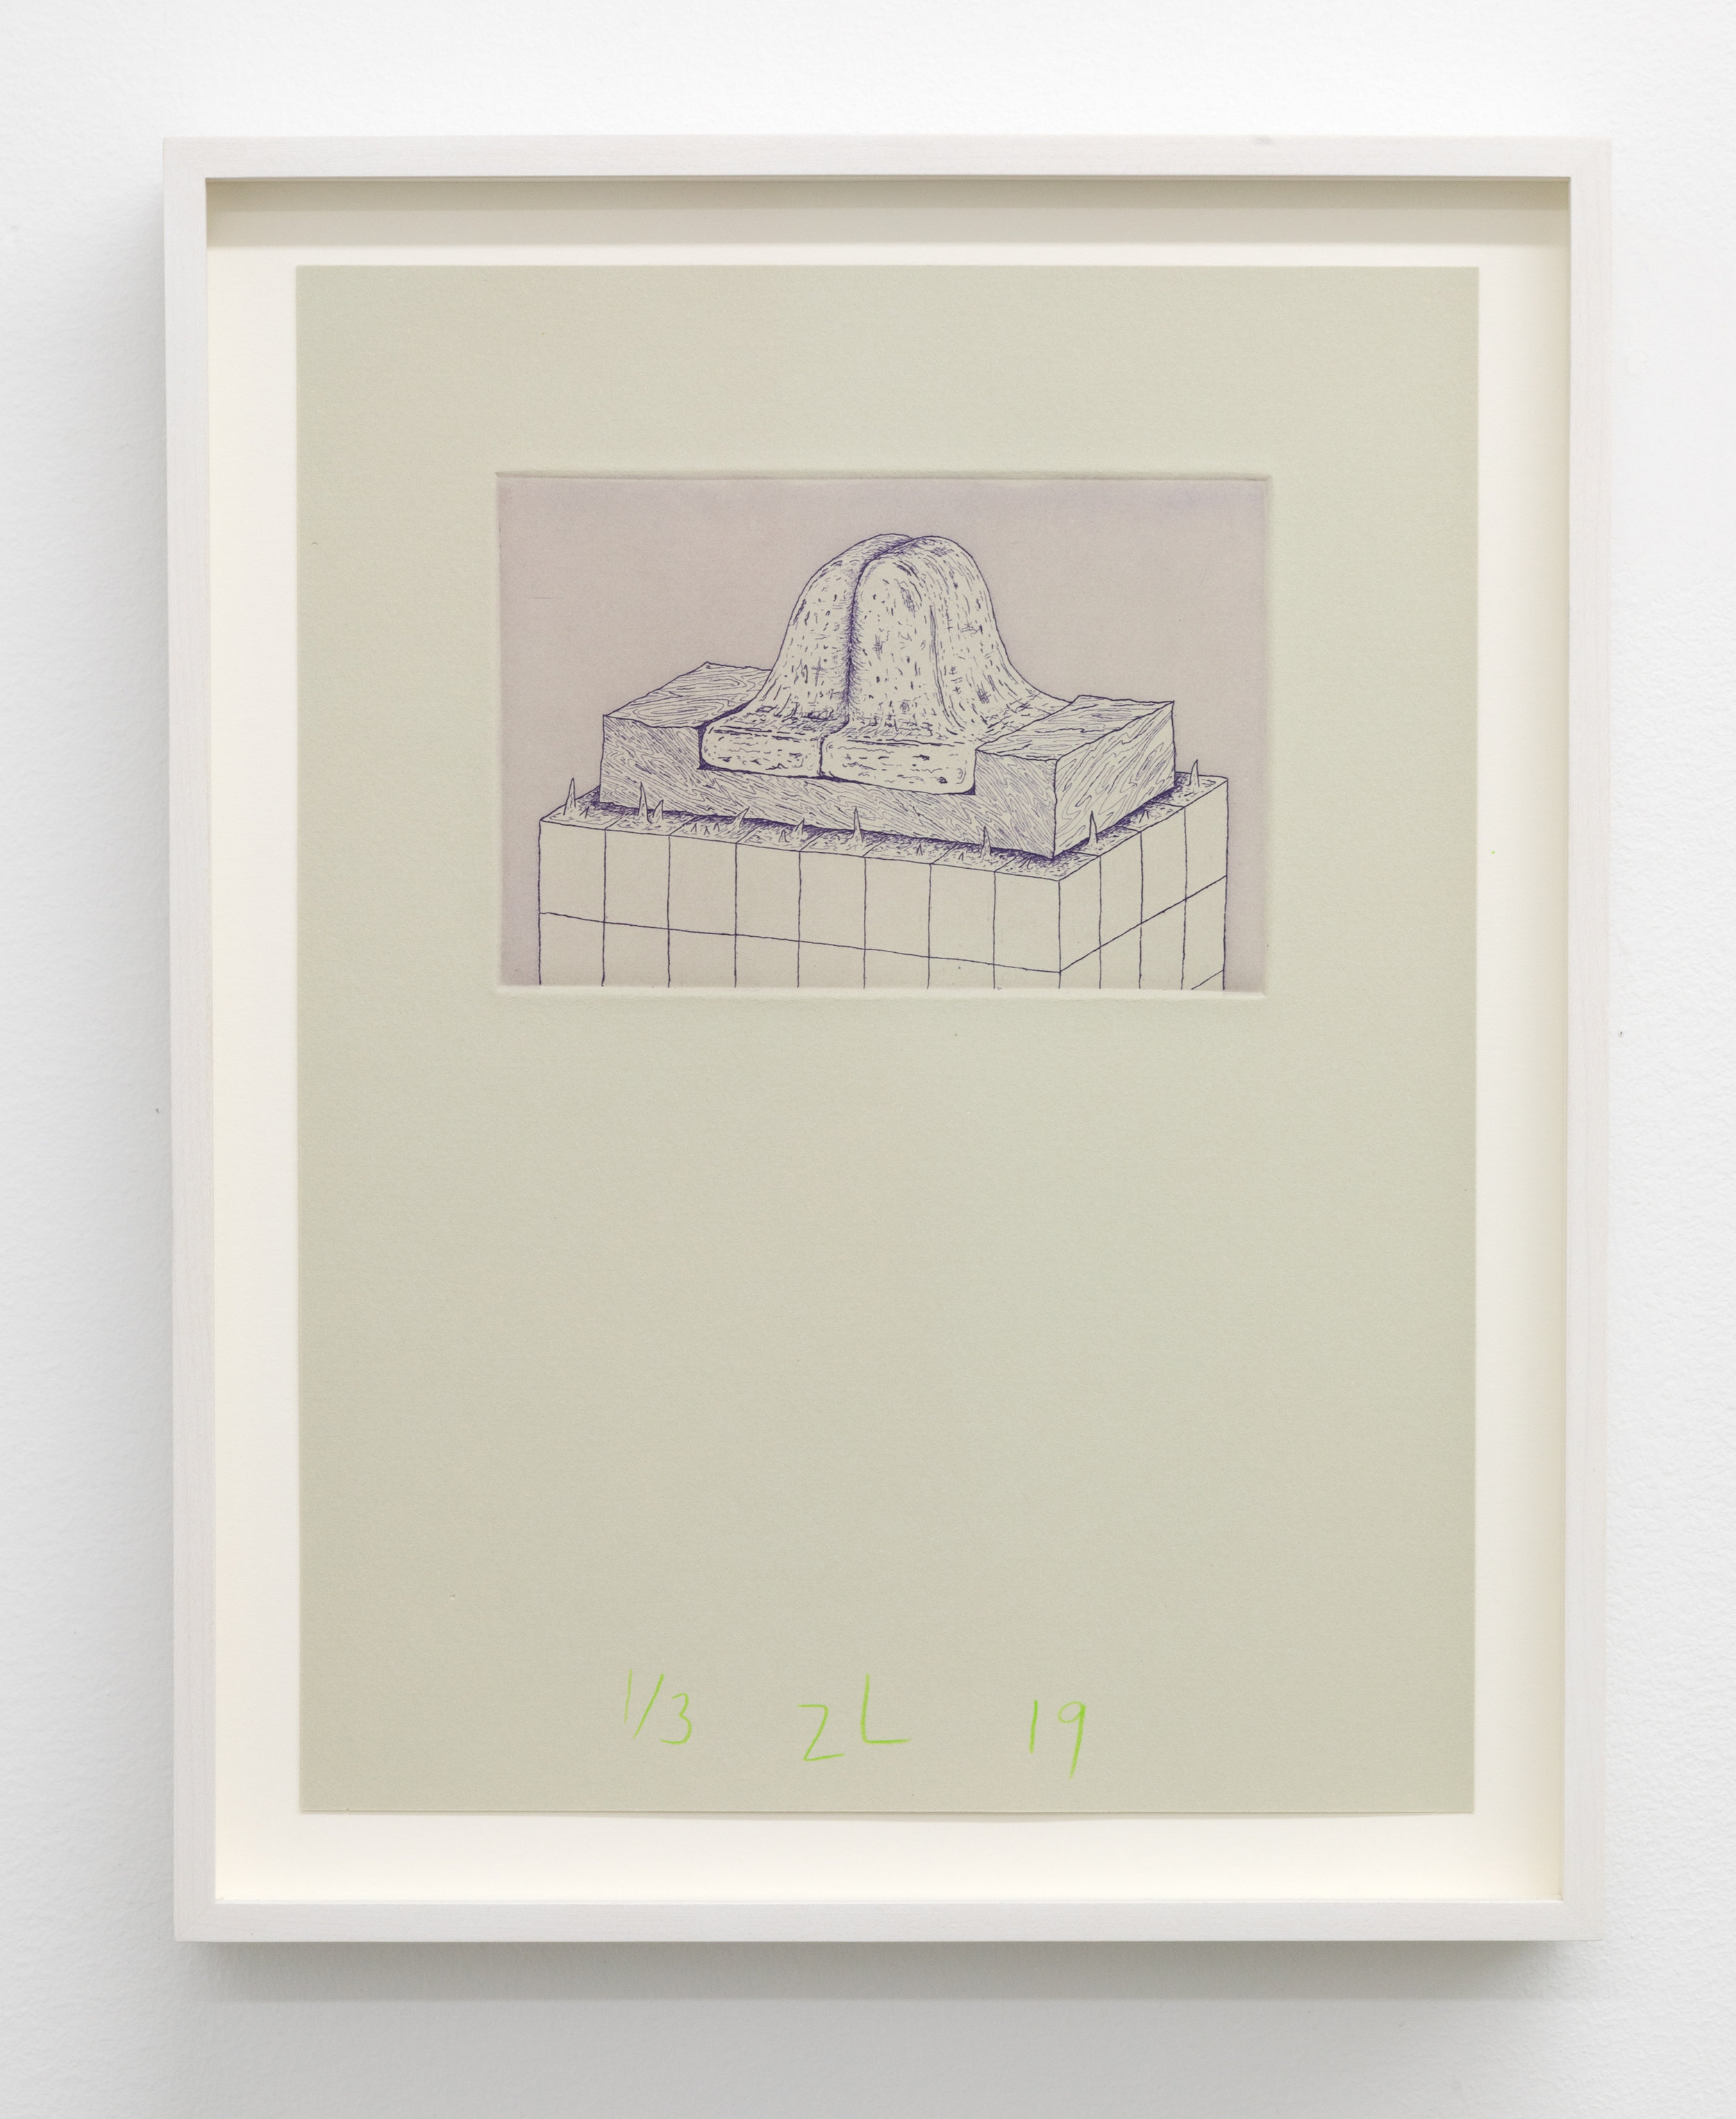 Zachary Leener,  Shekinta (Union) , 2019 Edition of 3 + 1 AP, Etching and aquatint, ink on paper 6 x 4 in